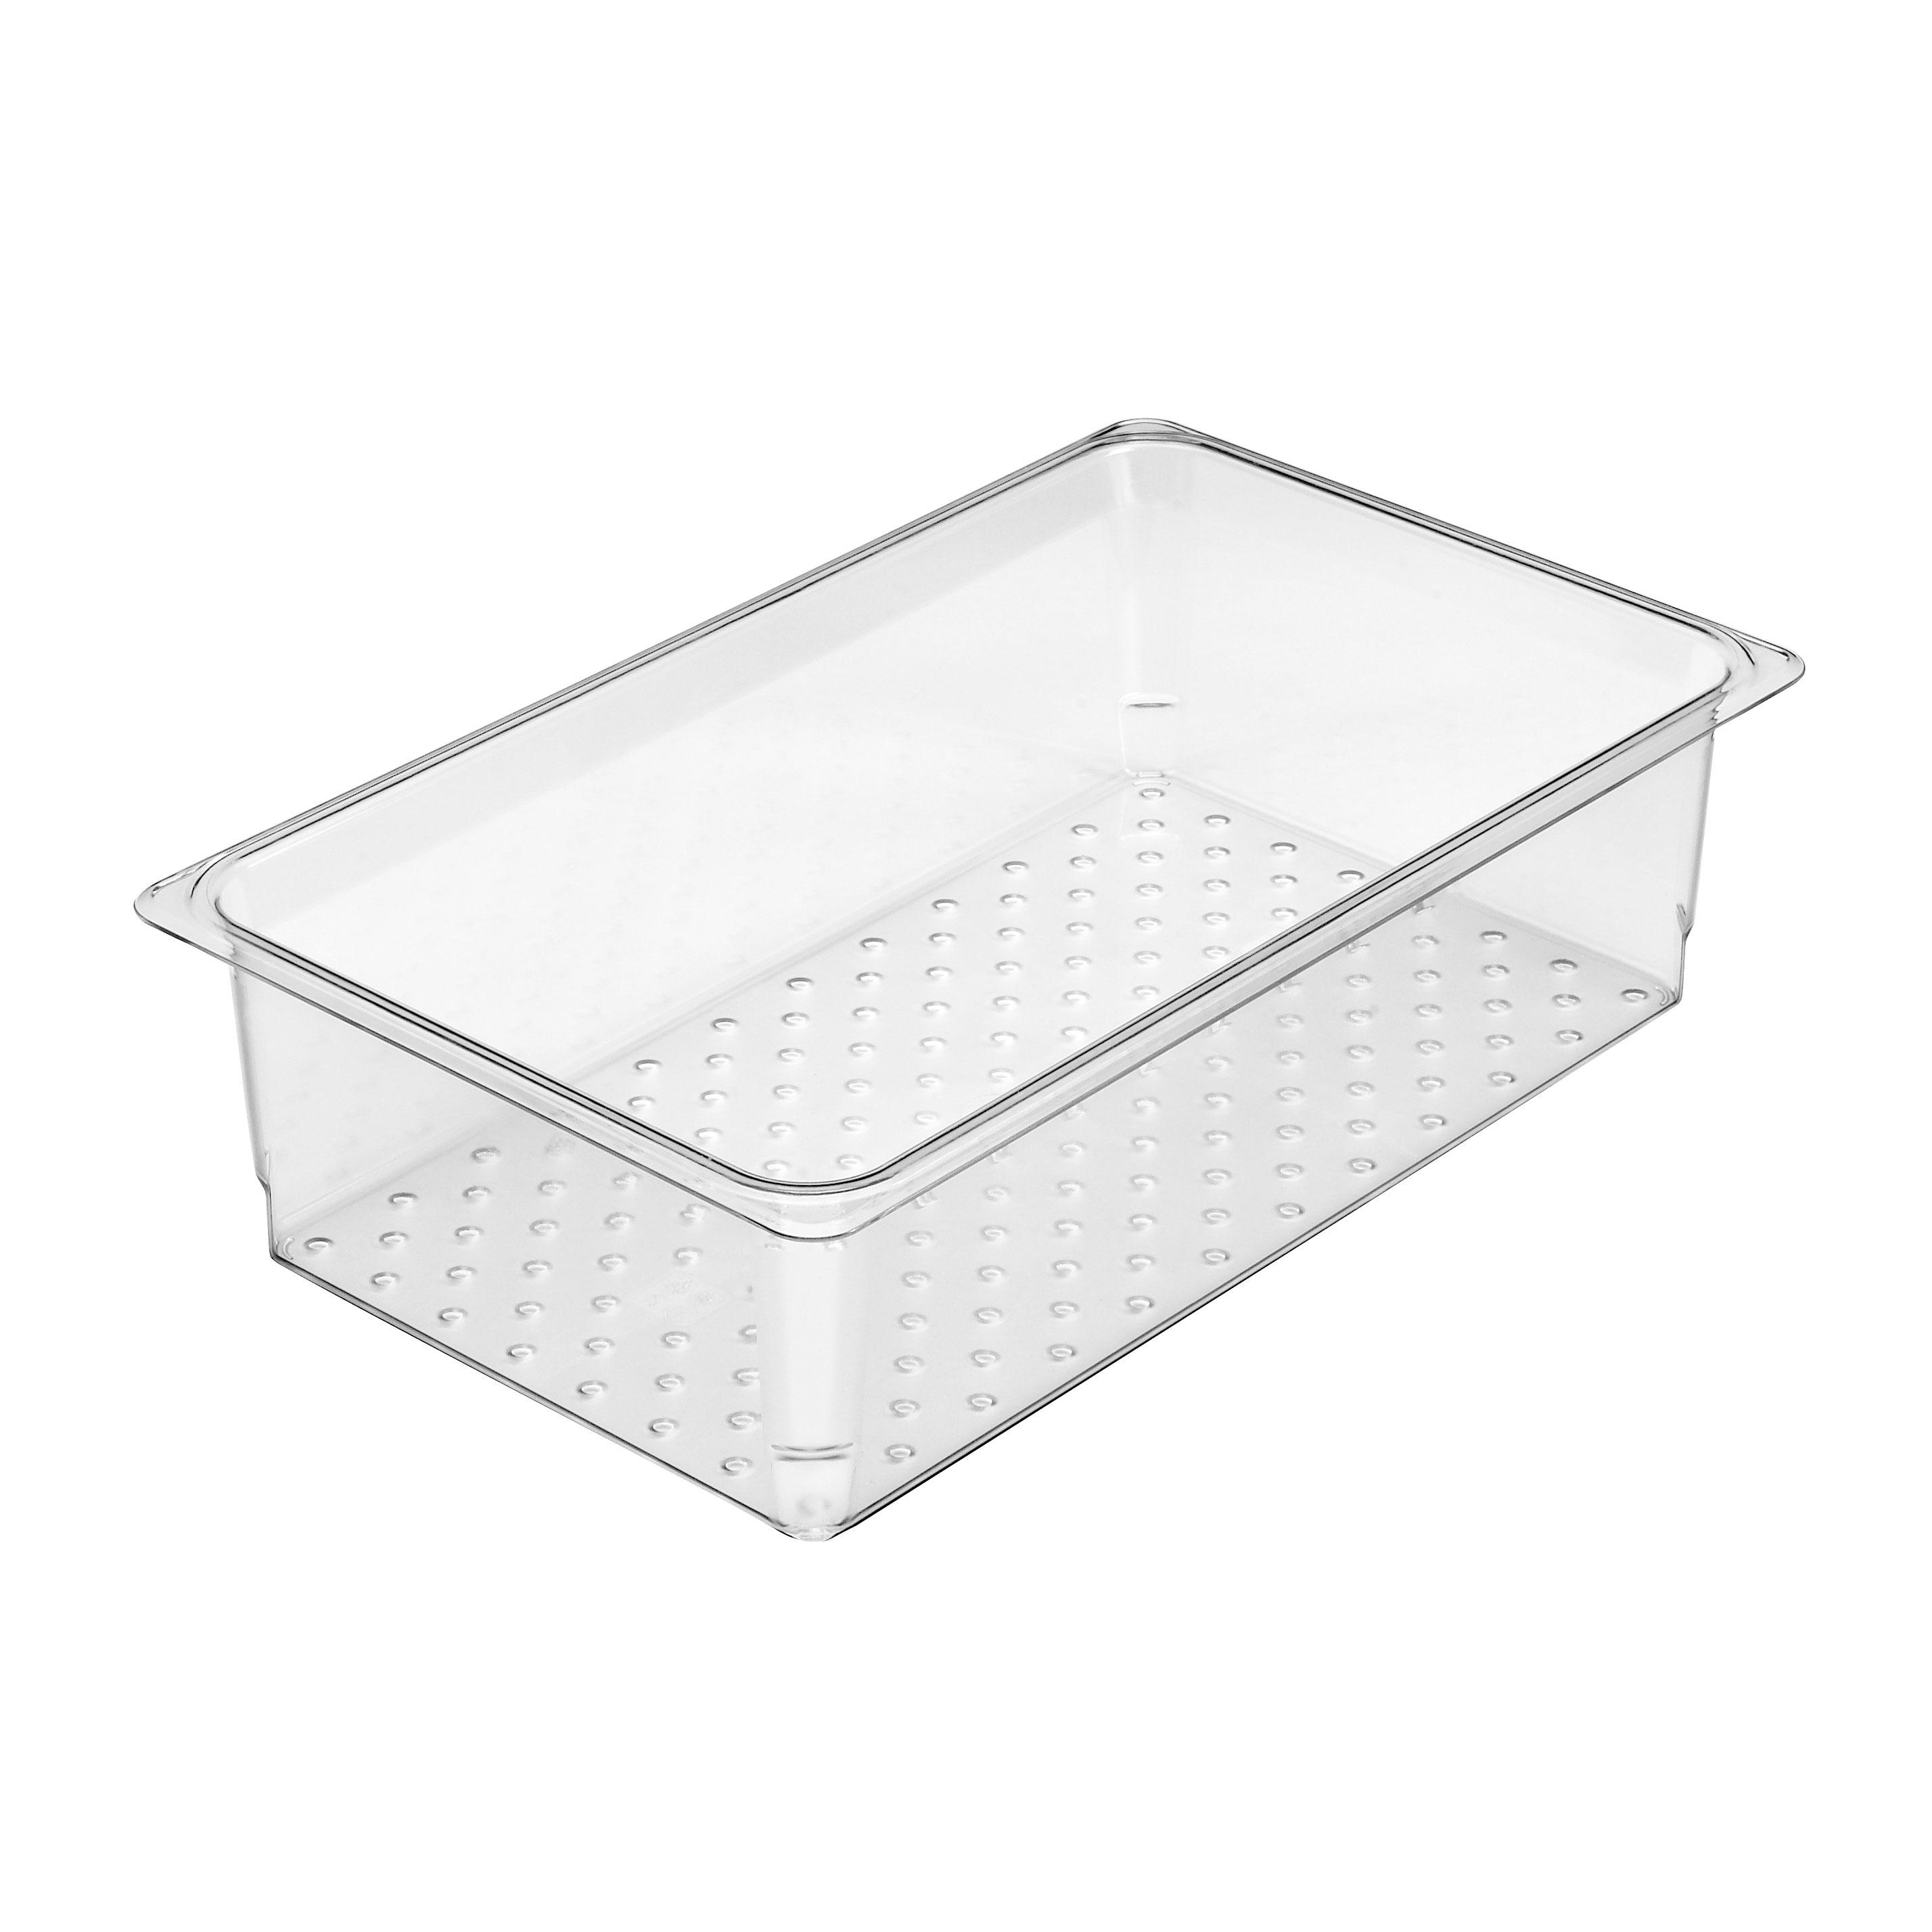 Cambro 15CLRCW135 food/beverage storage container